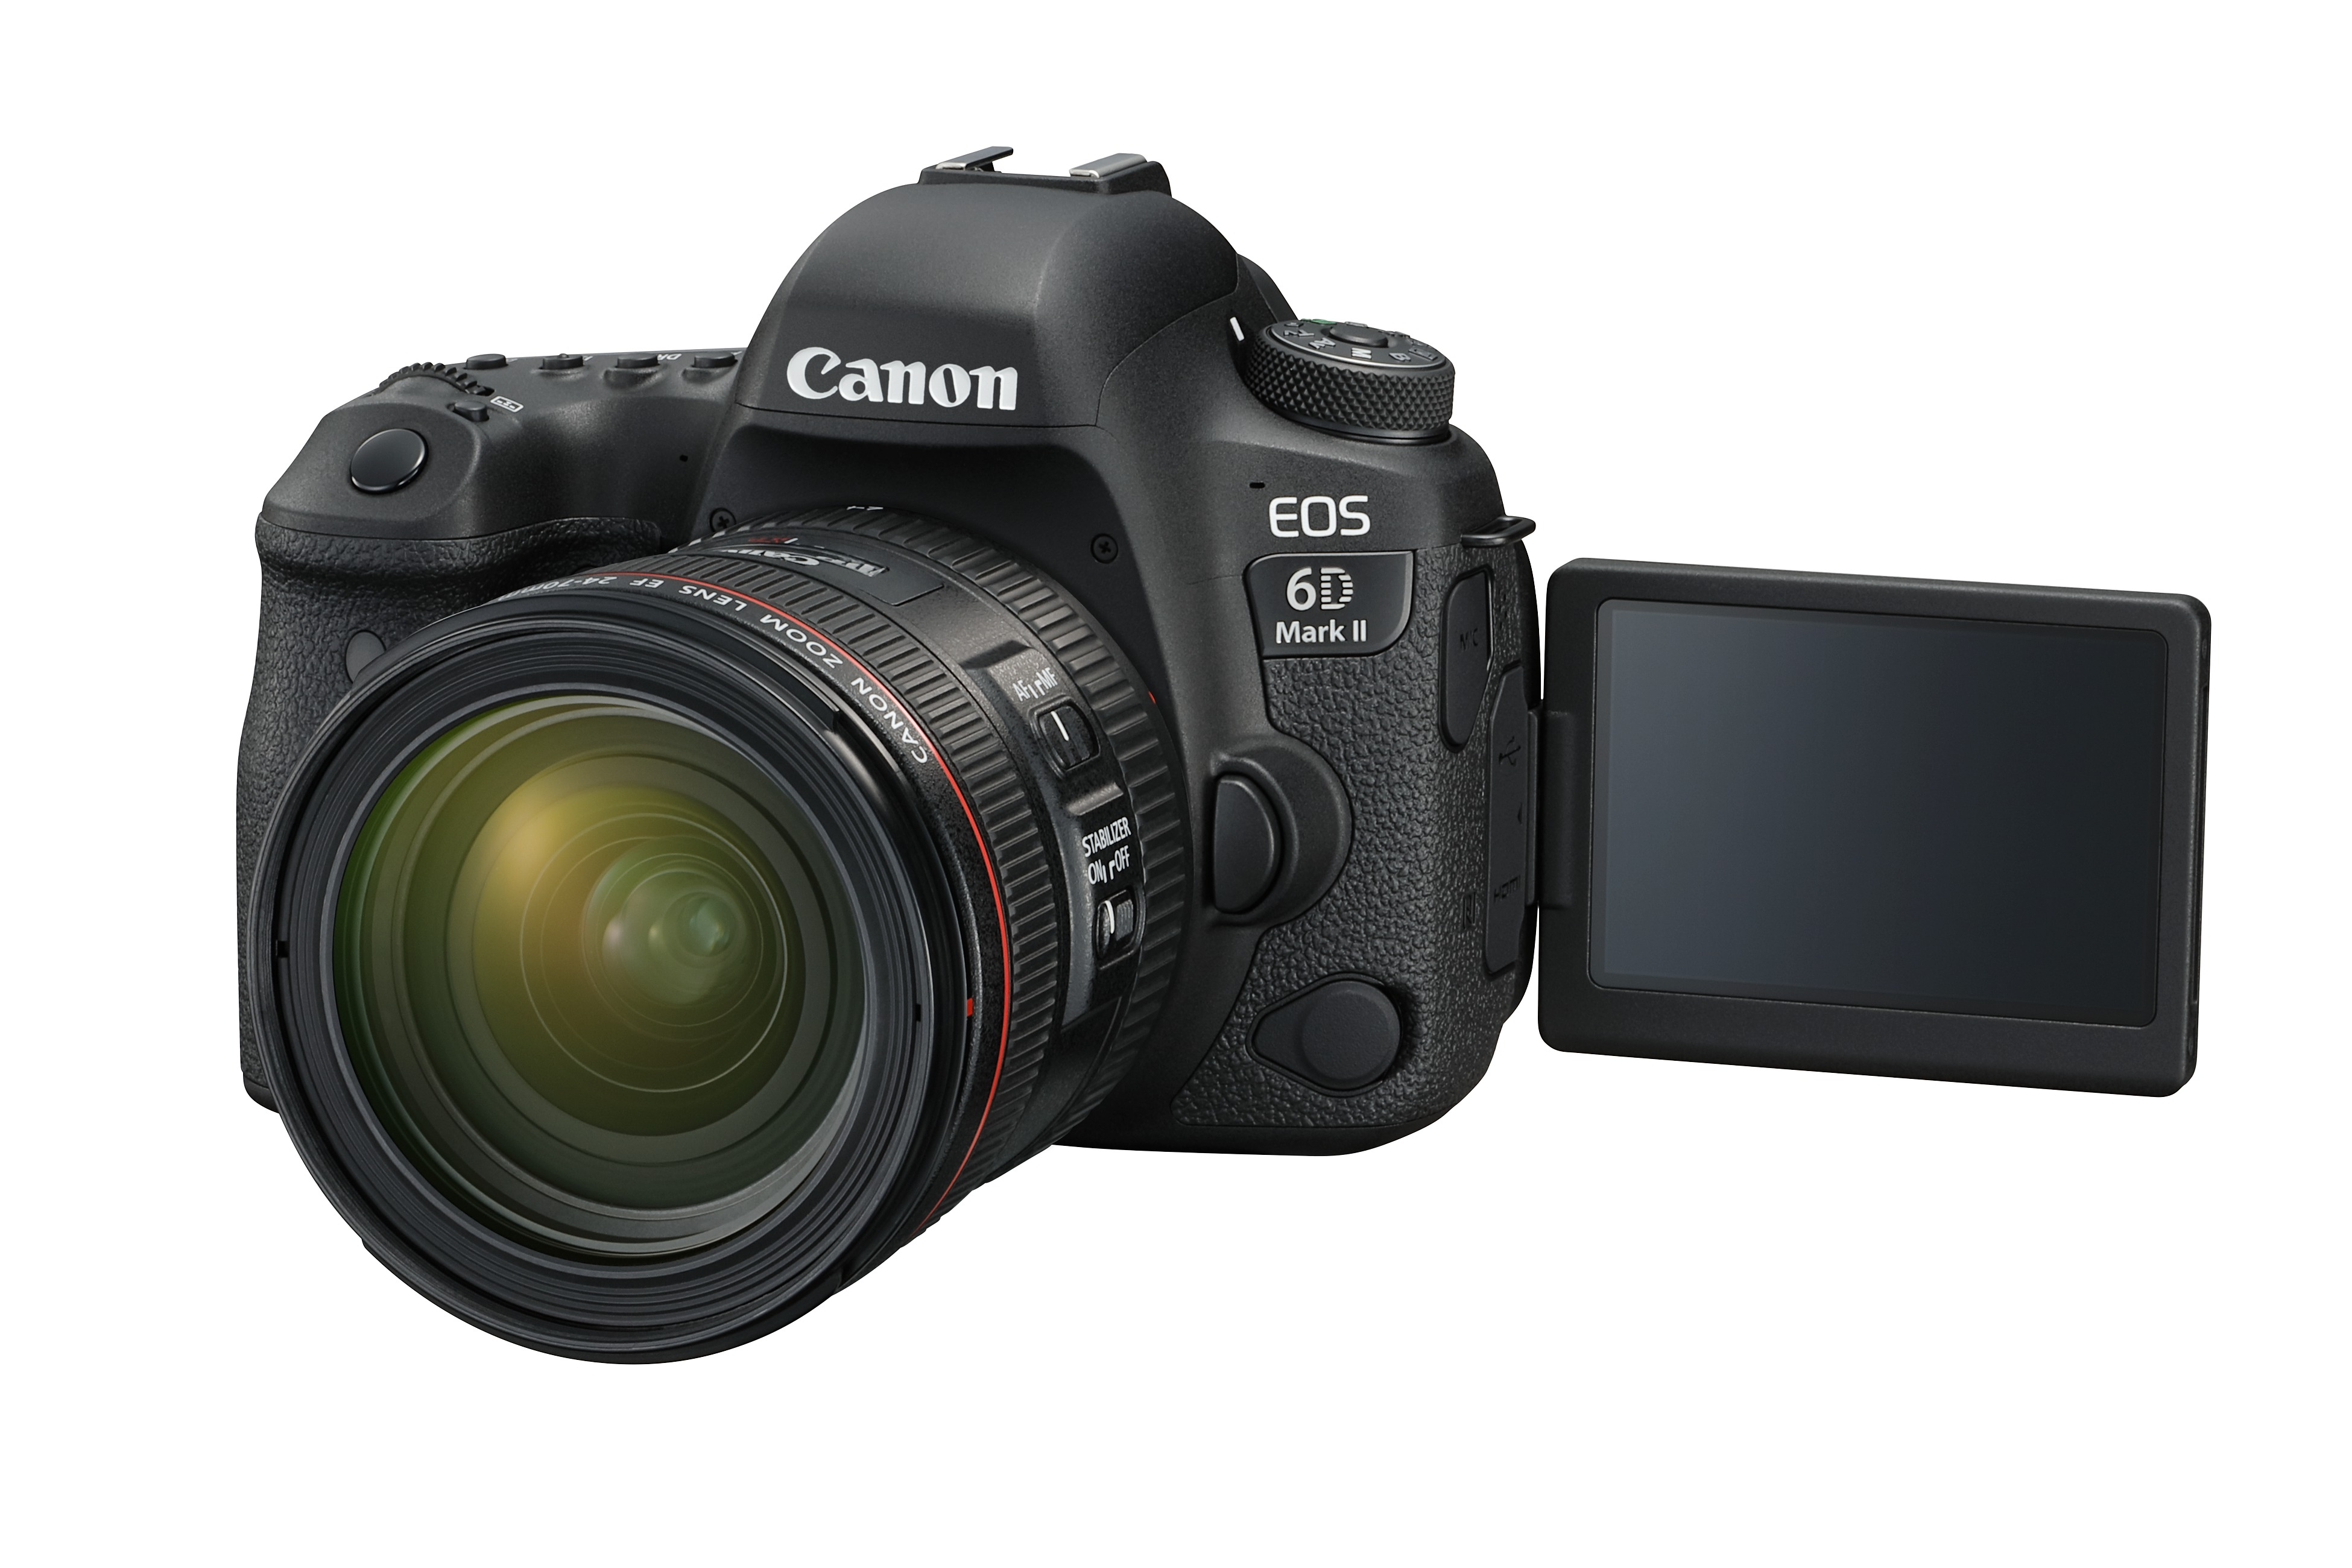 Canon EOS 6D Mark II vs Canon EOS 6D – Is it worth upgrading?